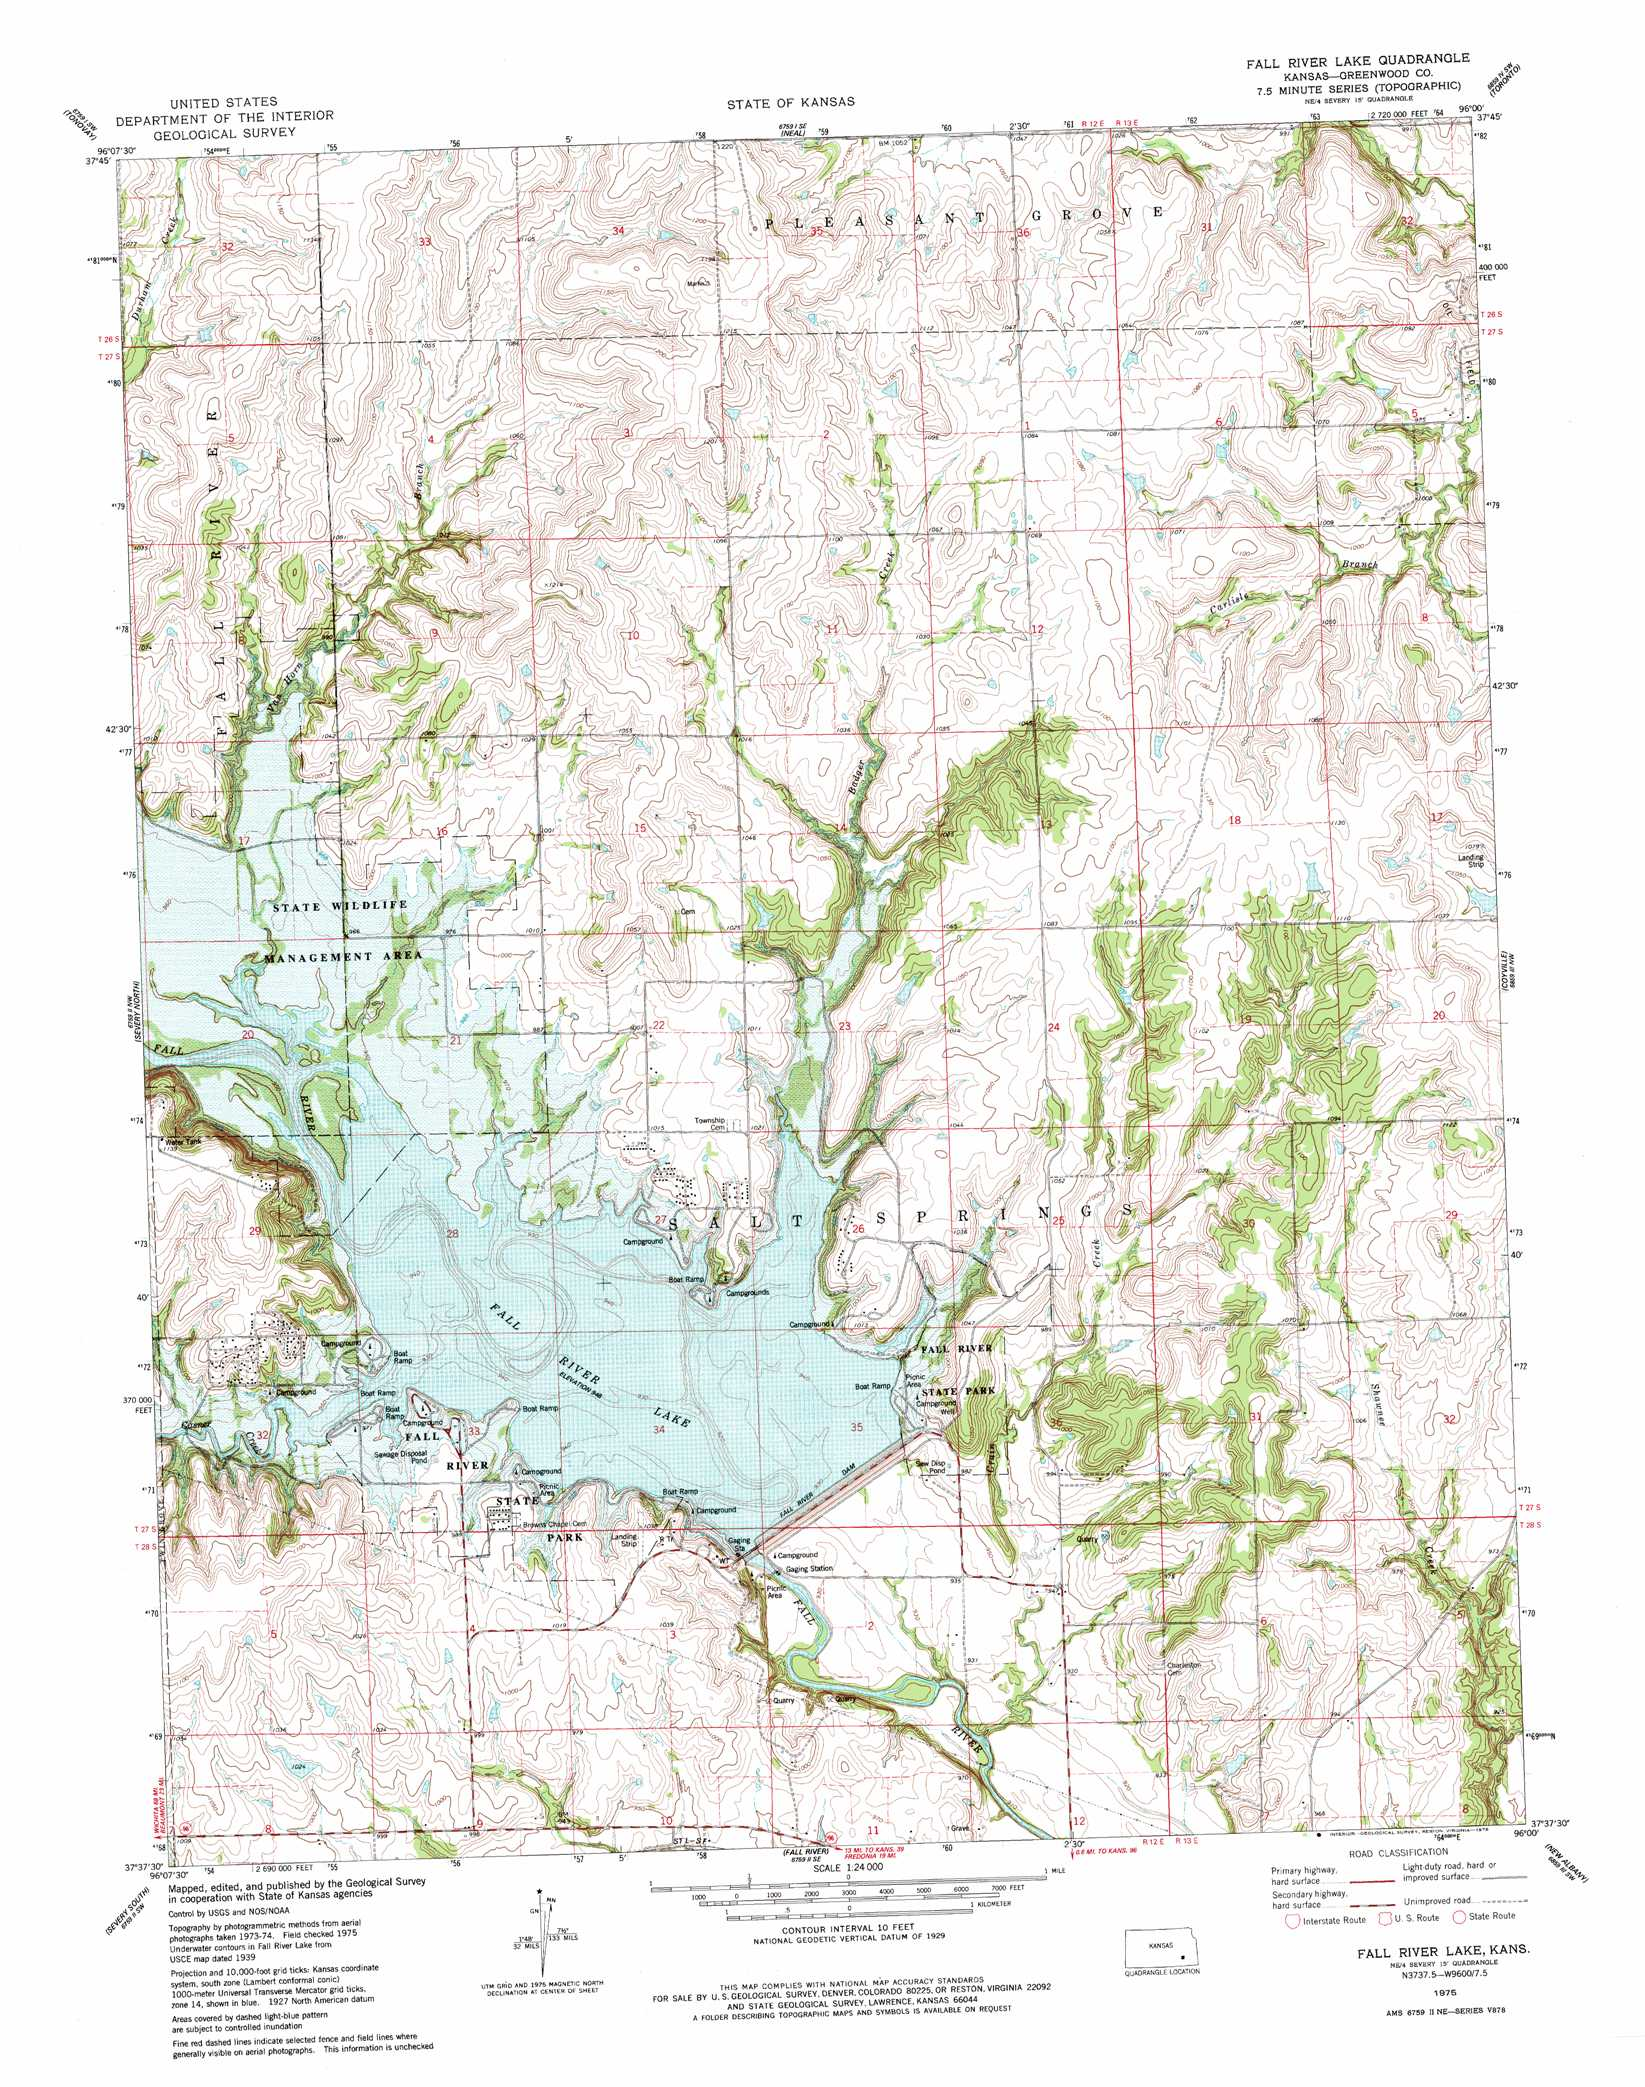 Fall River Lake topographic map KS USGS Topo Quad 37096f1